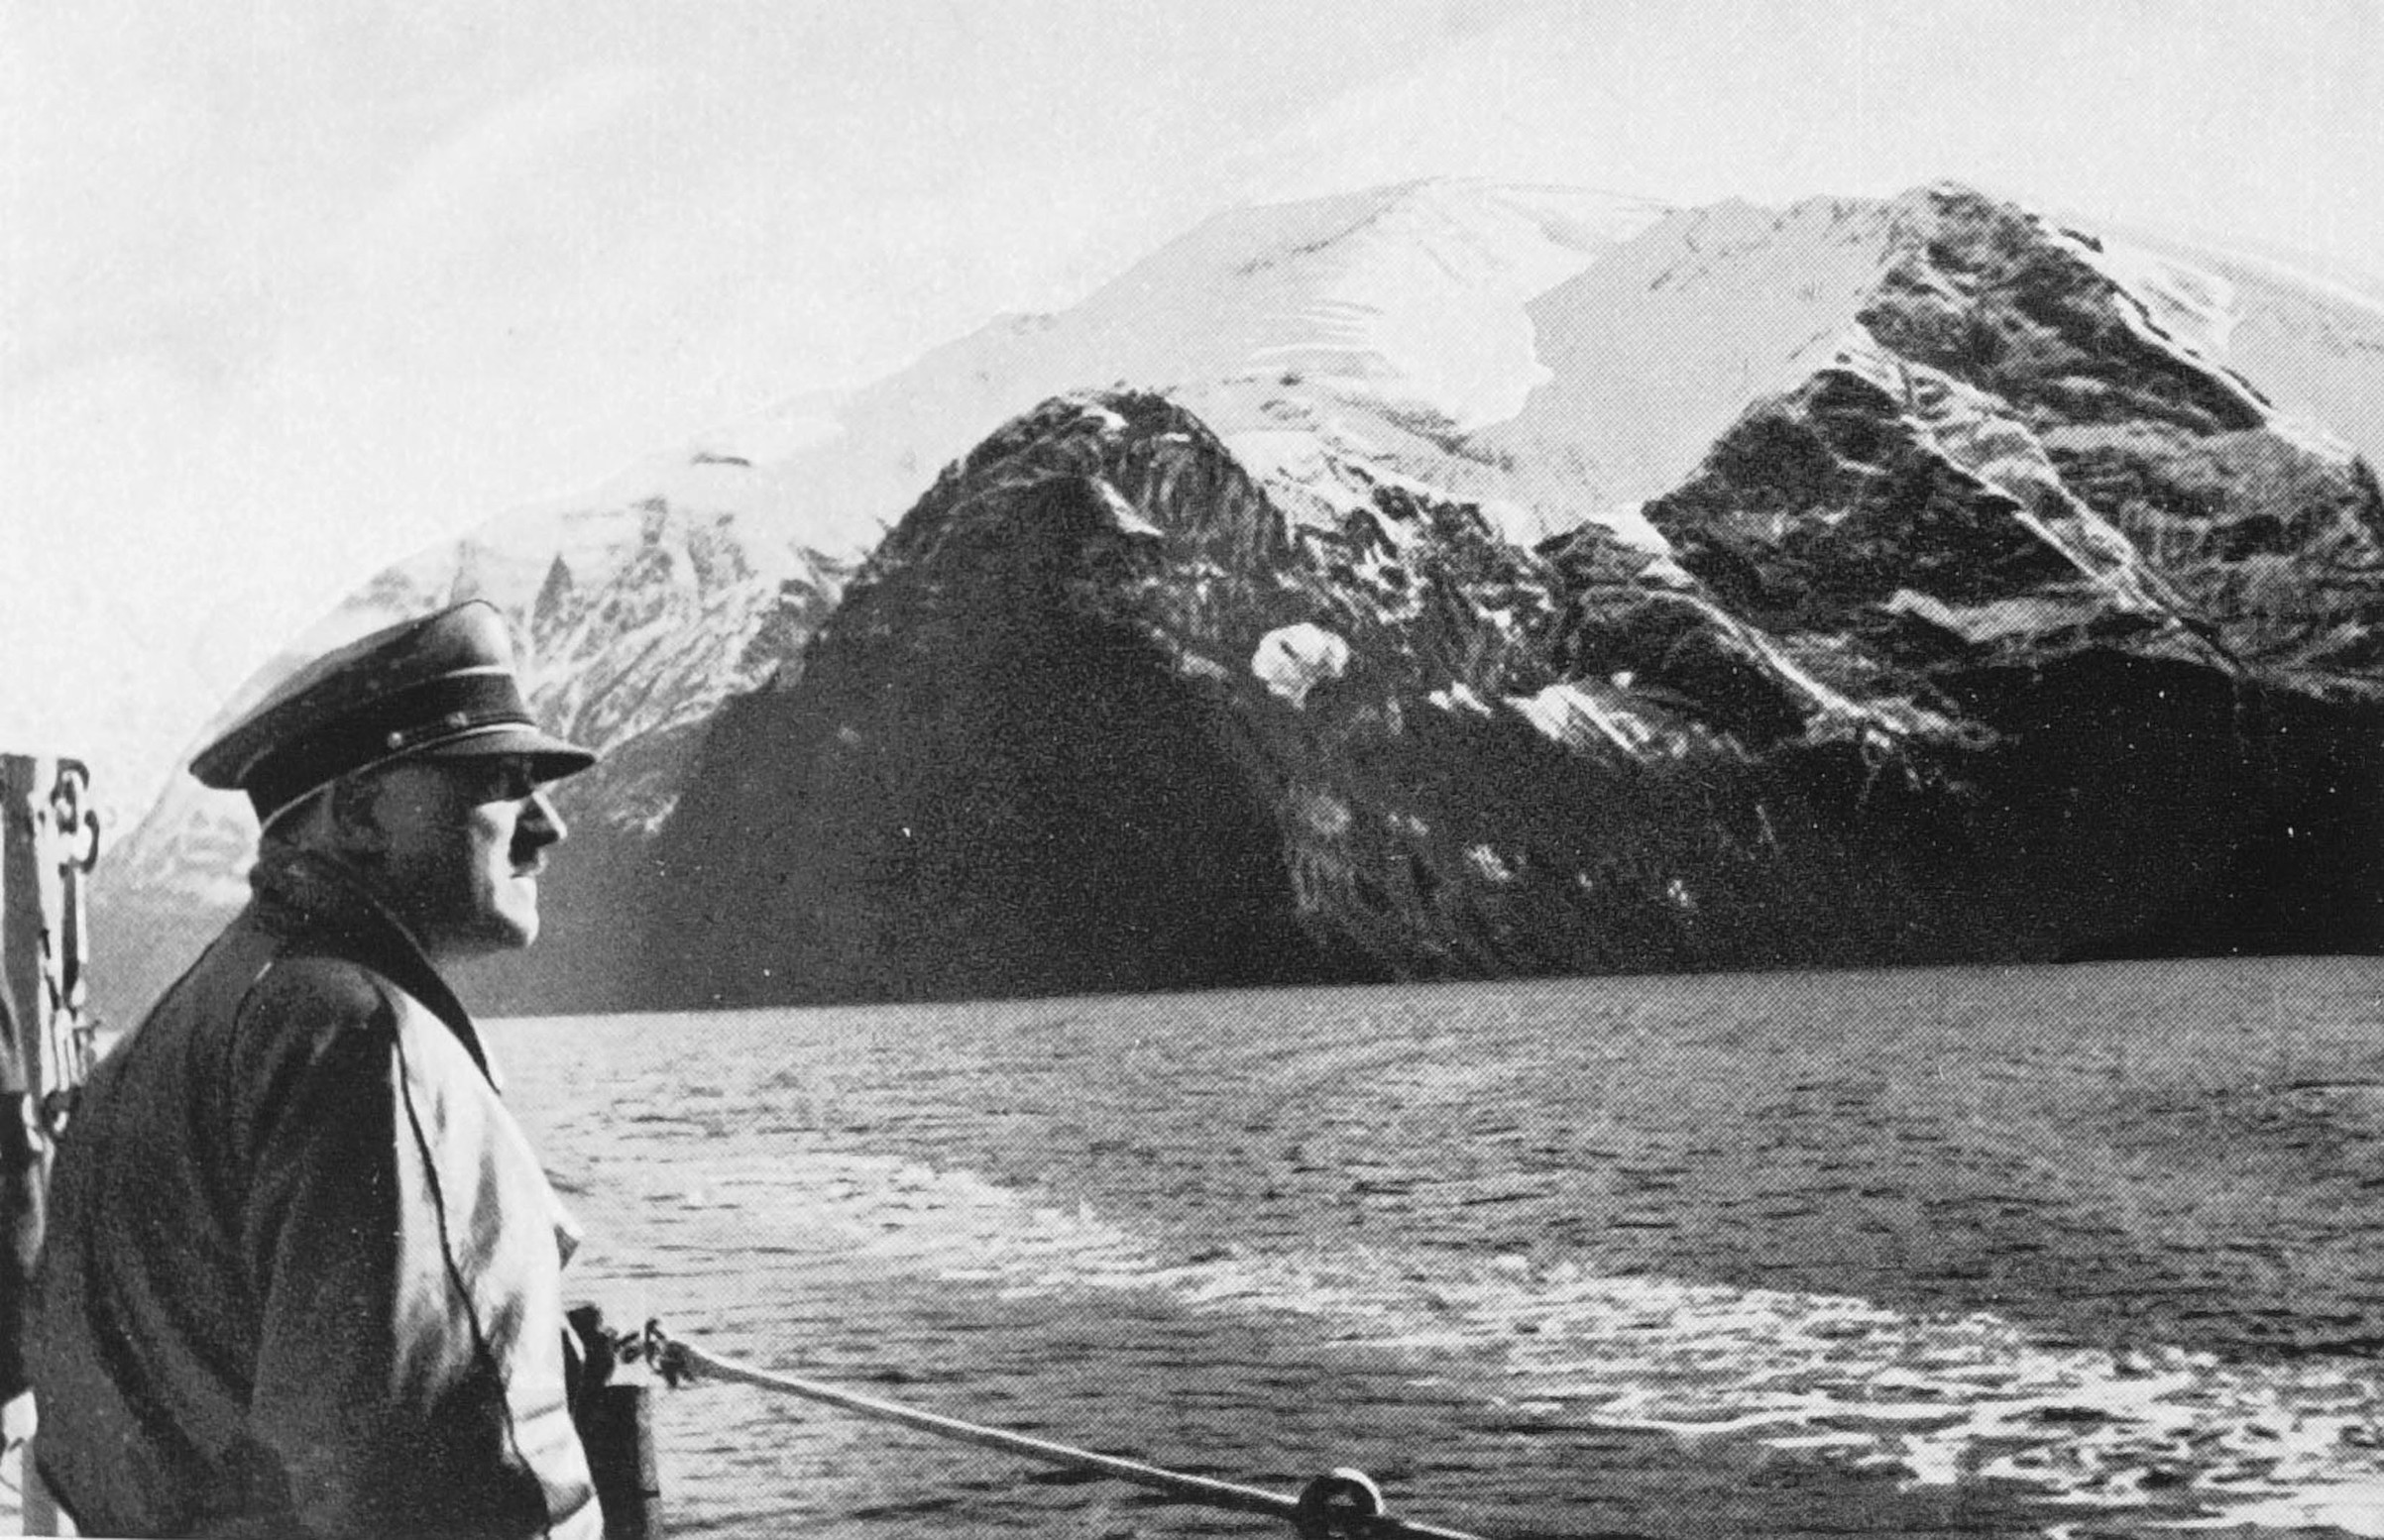 Adolf Hitler visiting the Norwegian fjords abord a war ship, in 1934.